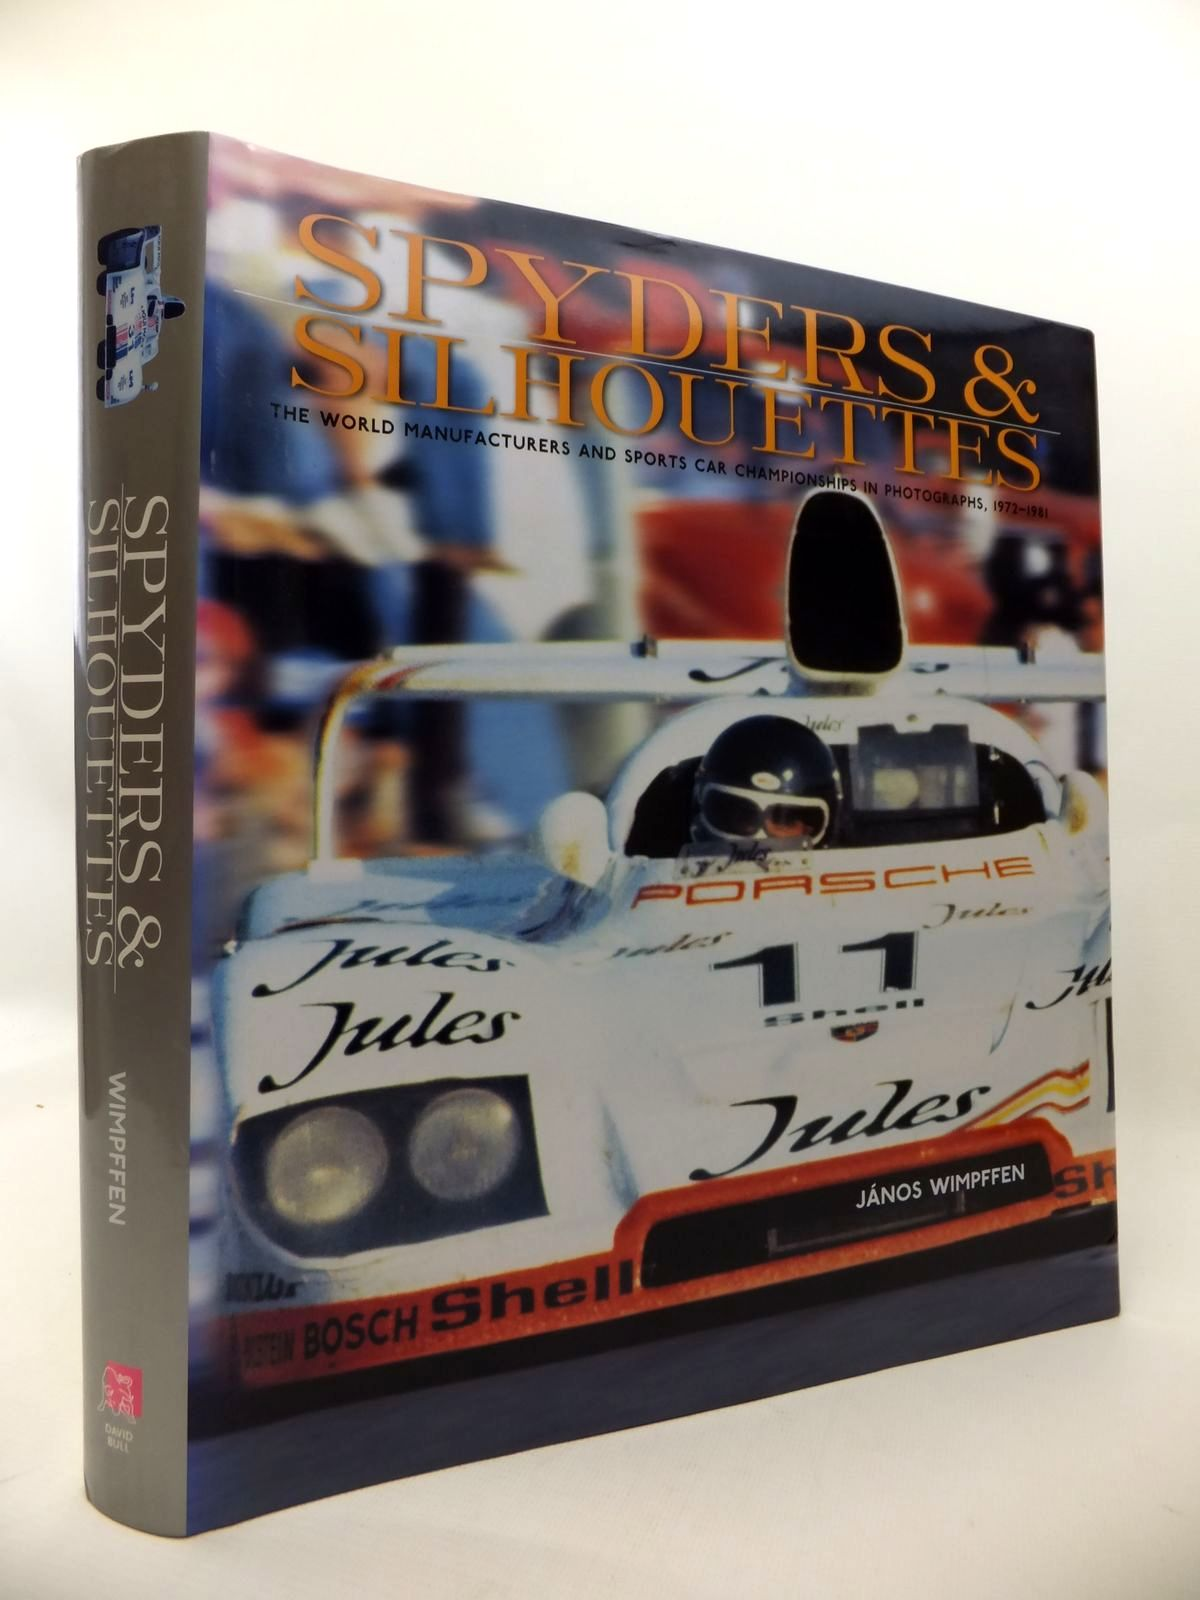 Photo of SPYDERS & SILHOUETTES: THE WORLD MANUFACTURERS AND SPORTS CAR CHAMPIONSHIPS IN PHOTOGRAPHS 1972-1981 written by Wimpffen, Janos published by David Bull Publishing (STOCK CODE: 1813390)  for sale by Stella & Rose's Books